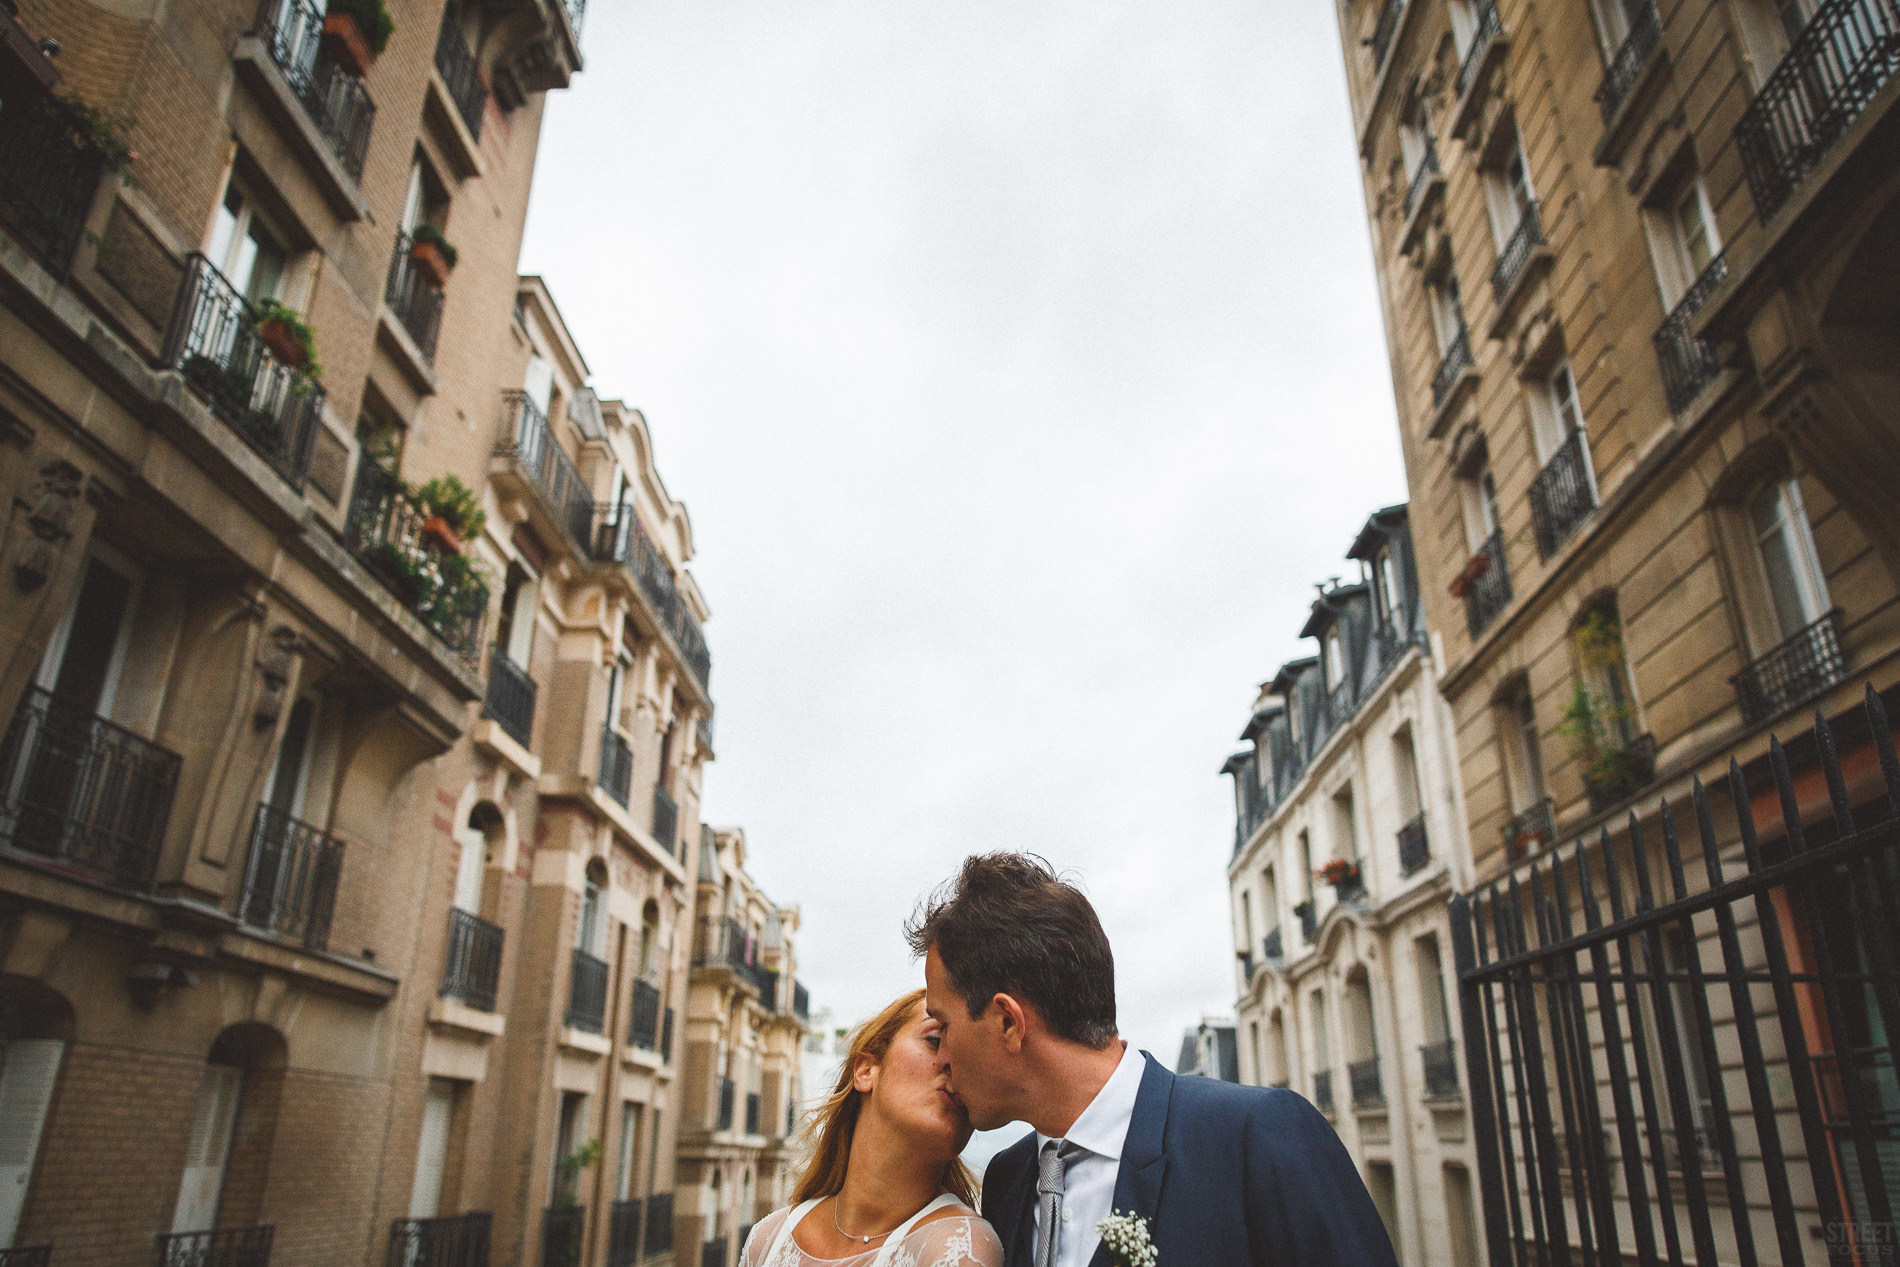 wedding_planner_mariage_chic_fun_elegant_photo_couple_romantique_paris_montmartre